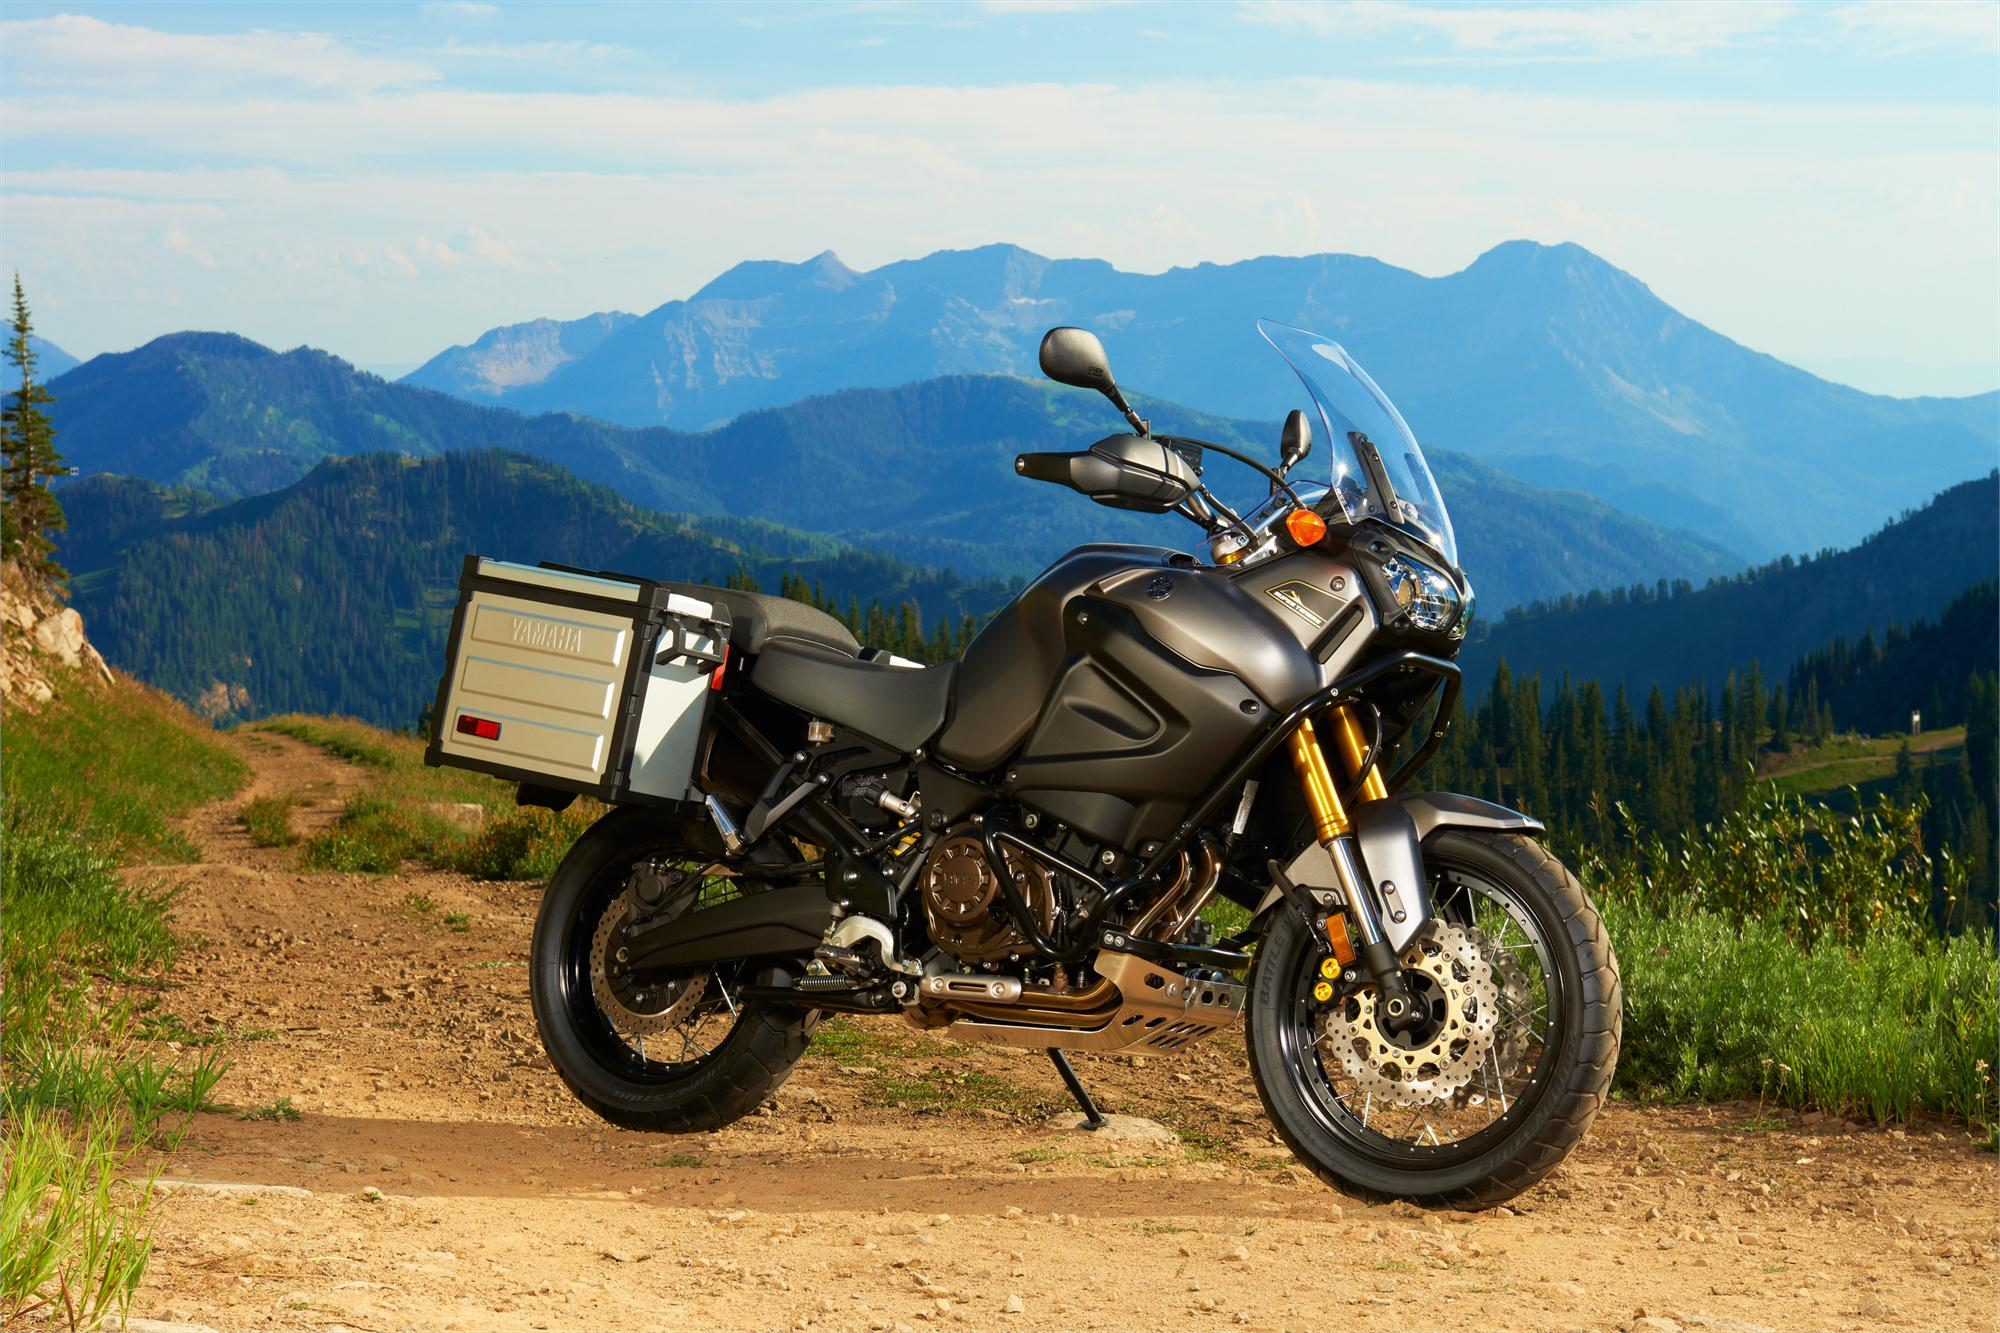 2013 Yamaha Xt1200z Super Tenere Attacks Bmw And Ktm